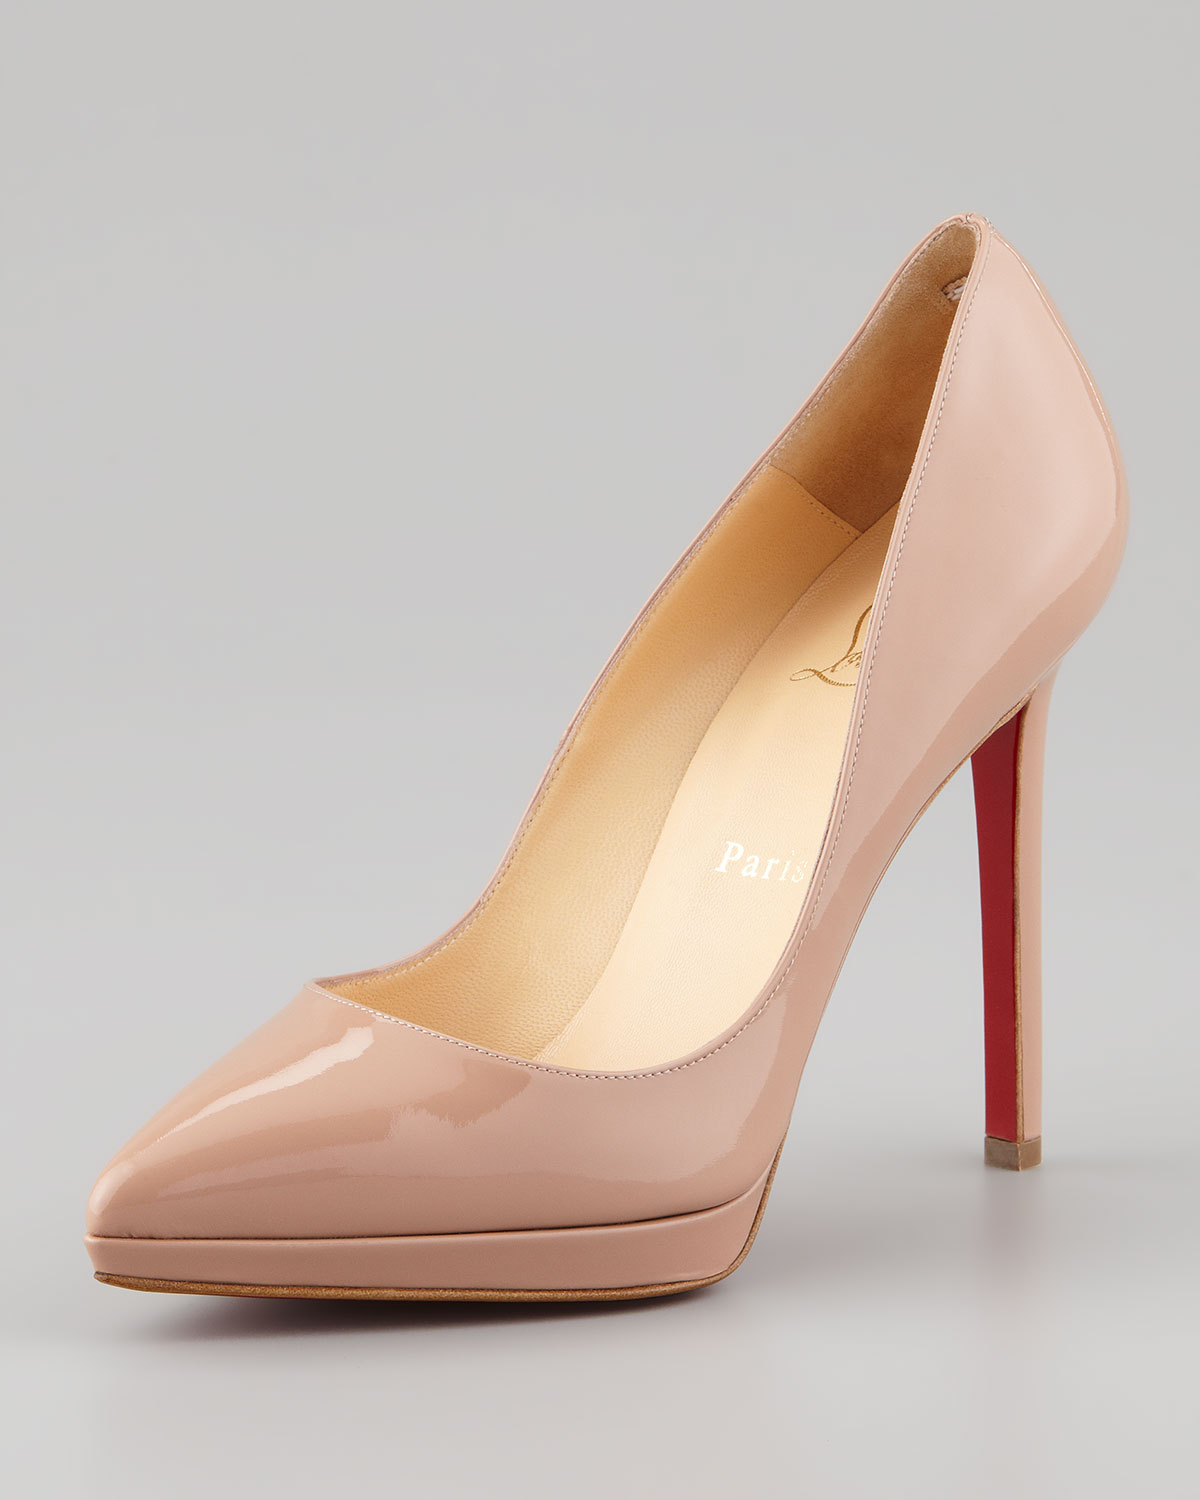 reputable site 3ee37 801ad Pigalle Plato Patent Platform Red Sole Pump, Nude